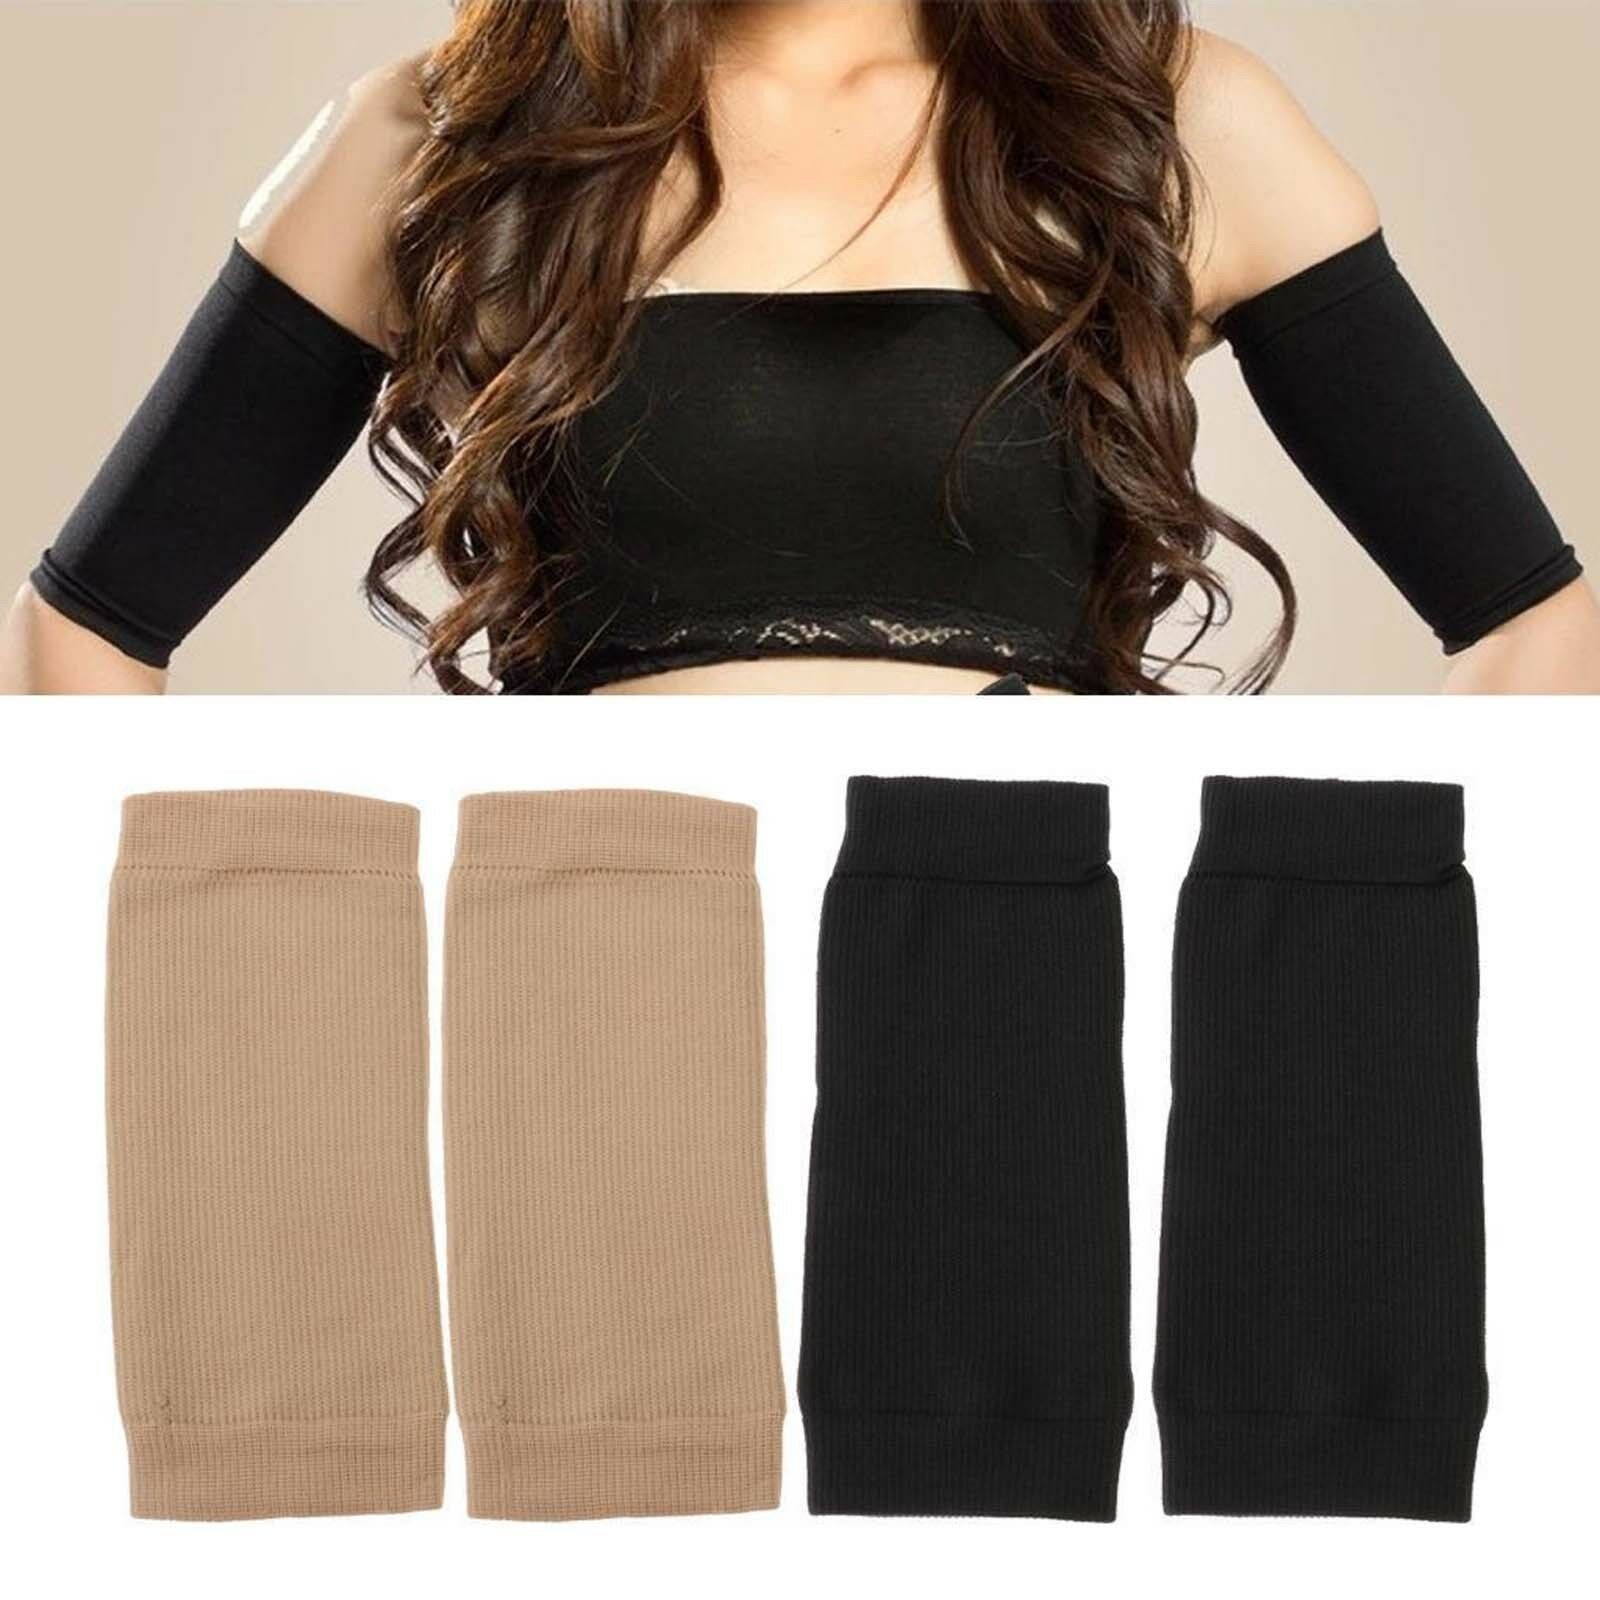 Hot Compression Slim Arms Sleeve Shaping Arm Shaper Upper Arm Supports 2color Us